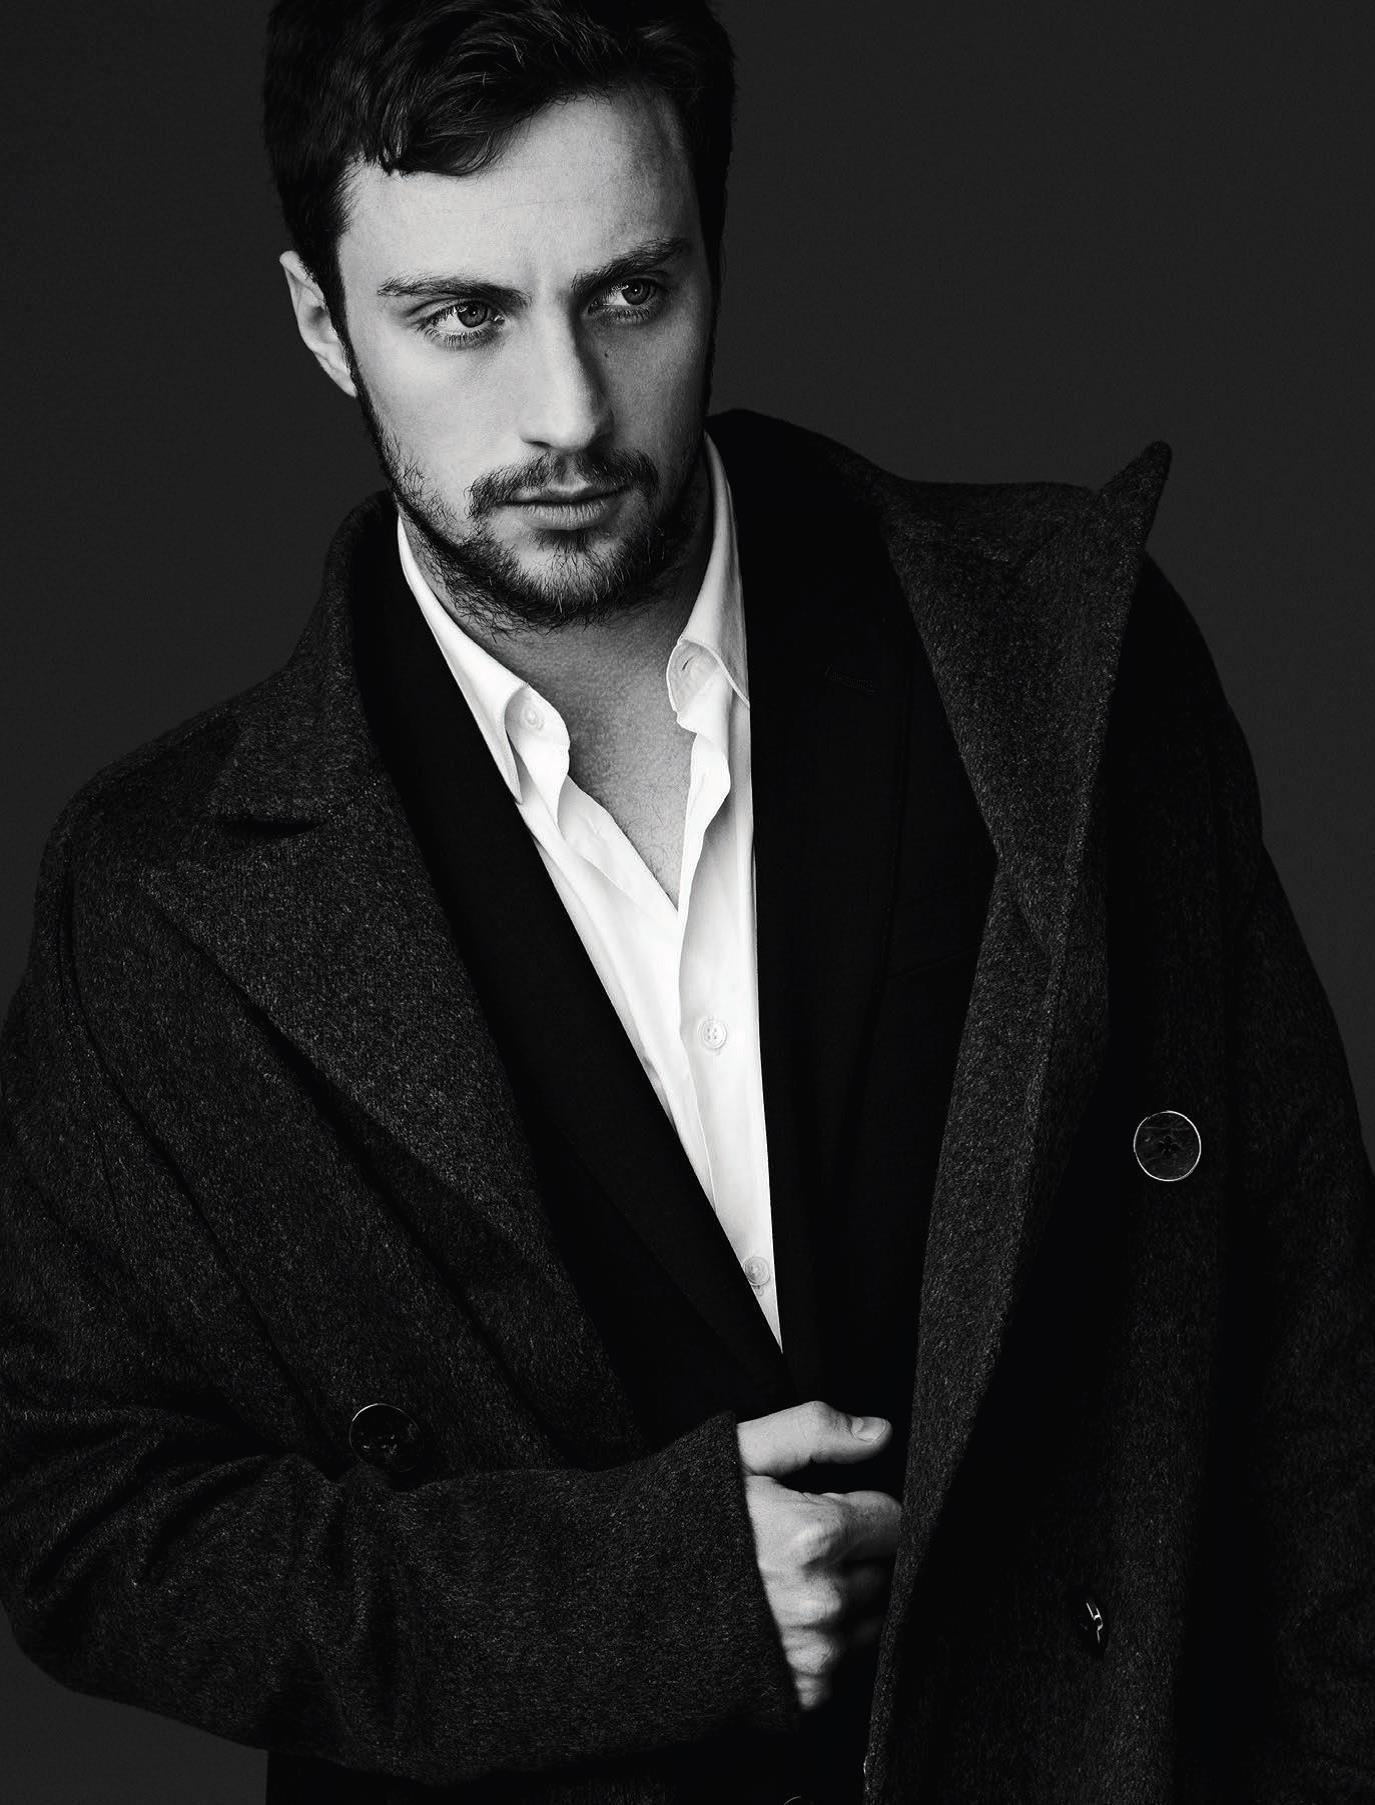 Communication on this topic: Elsie Mackay (actress), aaron-taylor-johnson-born-1990/